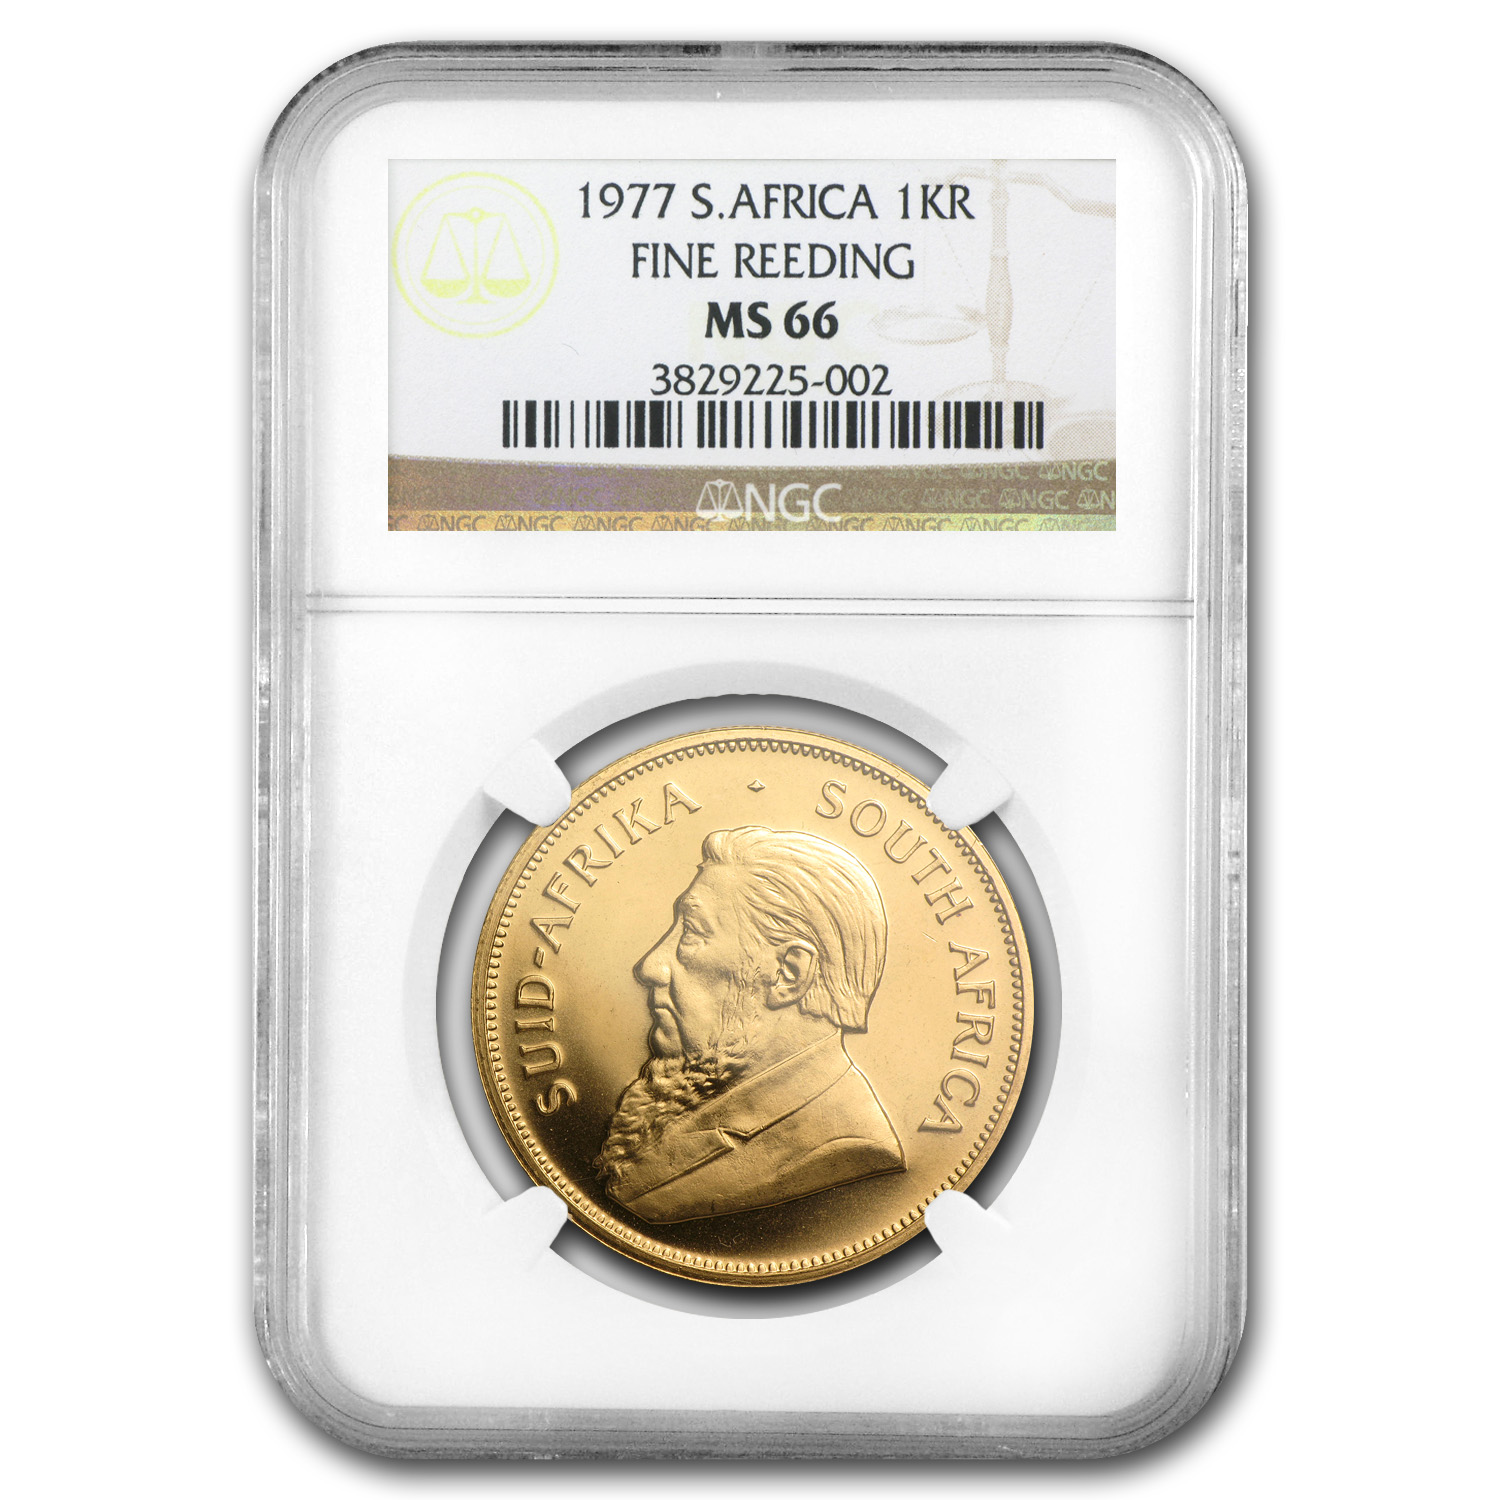 1977 South Africa 1 oz Gold Krugerrand MS-66 NGC (Fine Reeding)